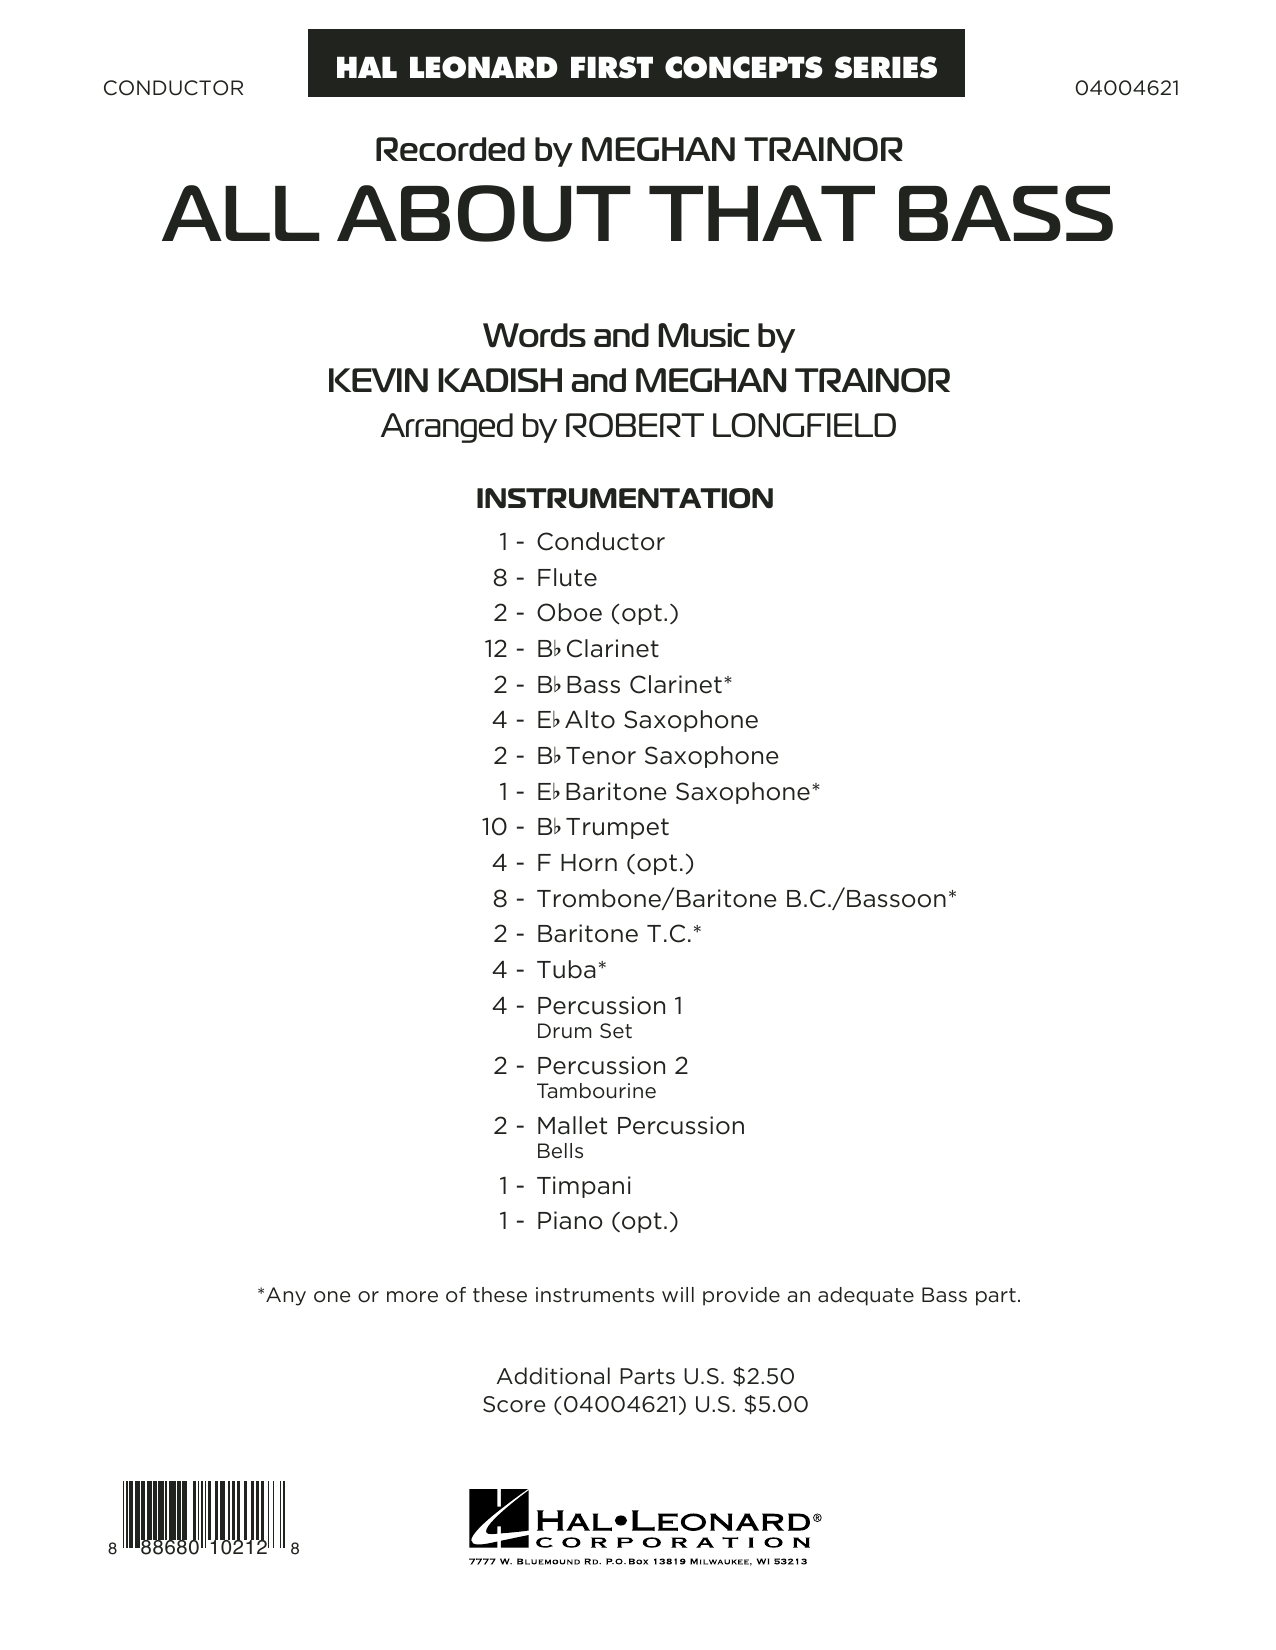 Robert Longfield All About That Bass - Conductor Score (Full Score) sheet music notes and chords. Download Printable PDF.